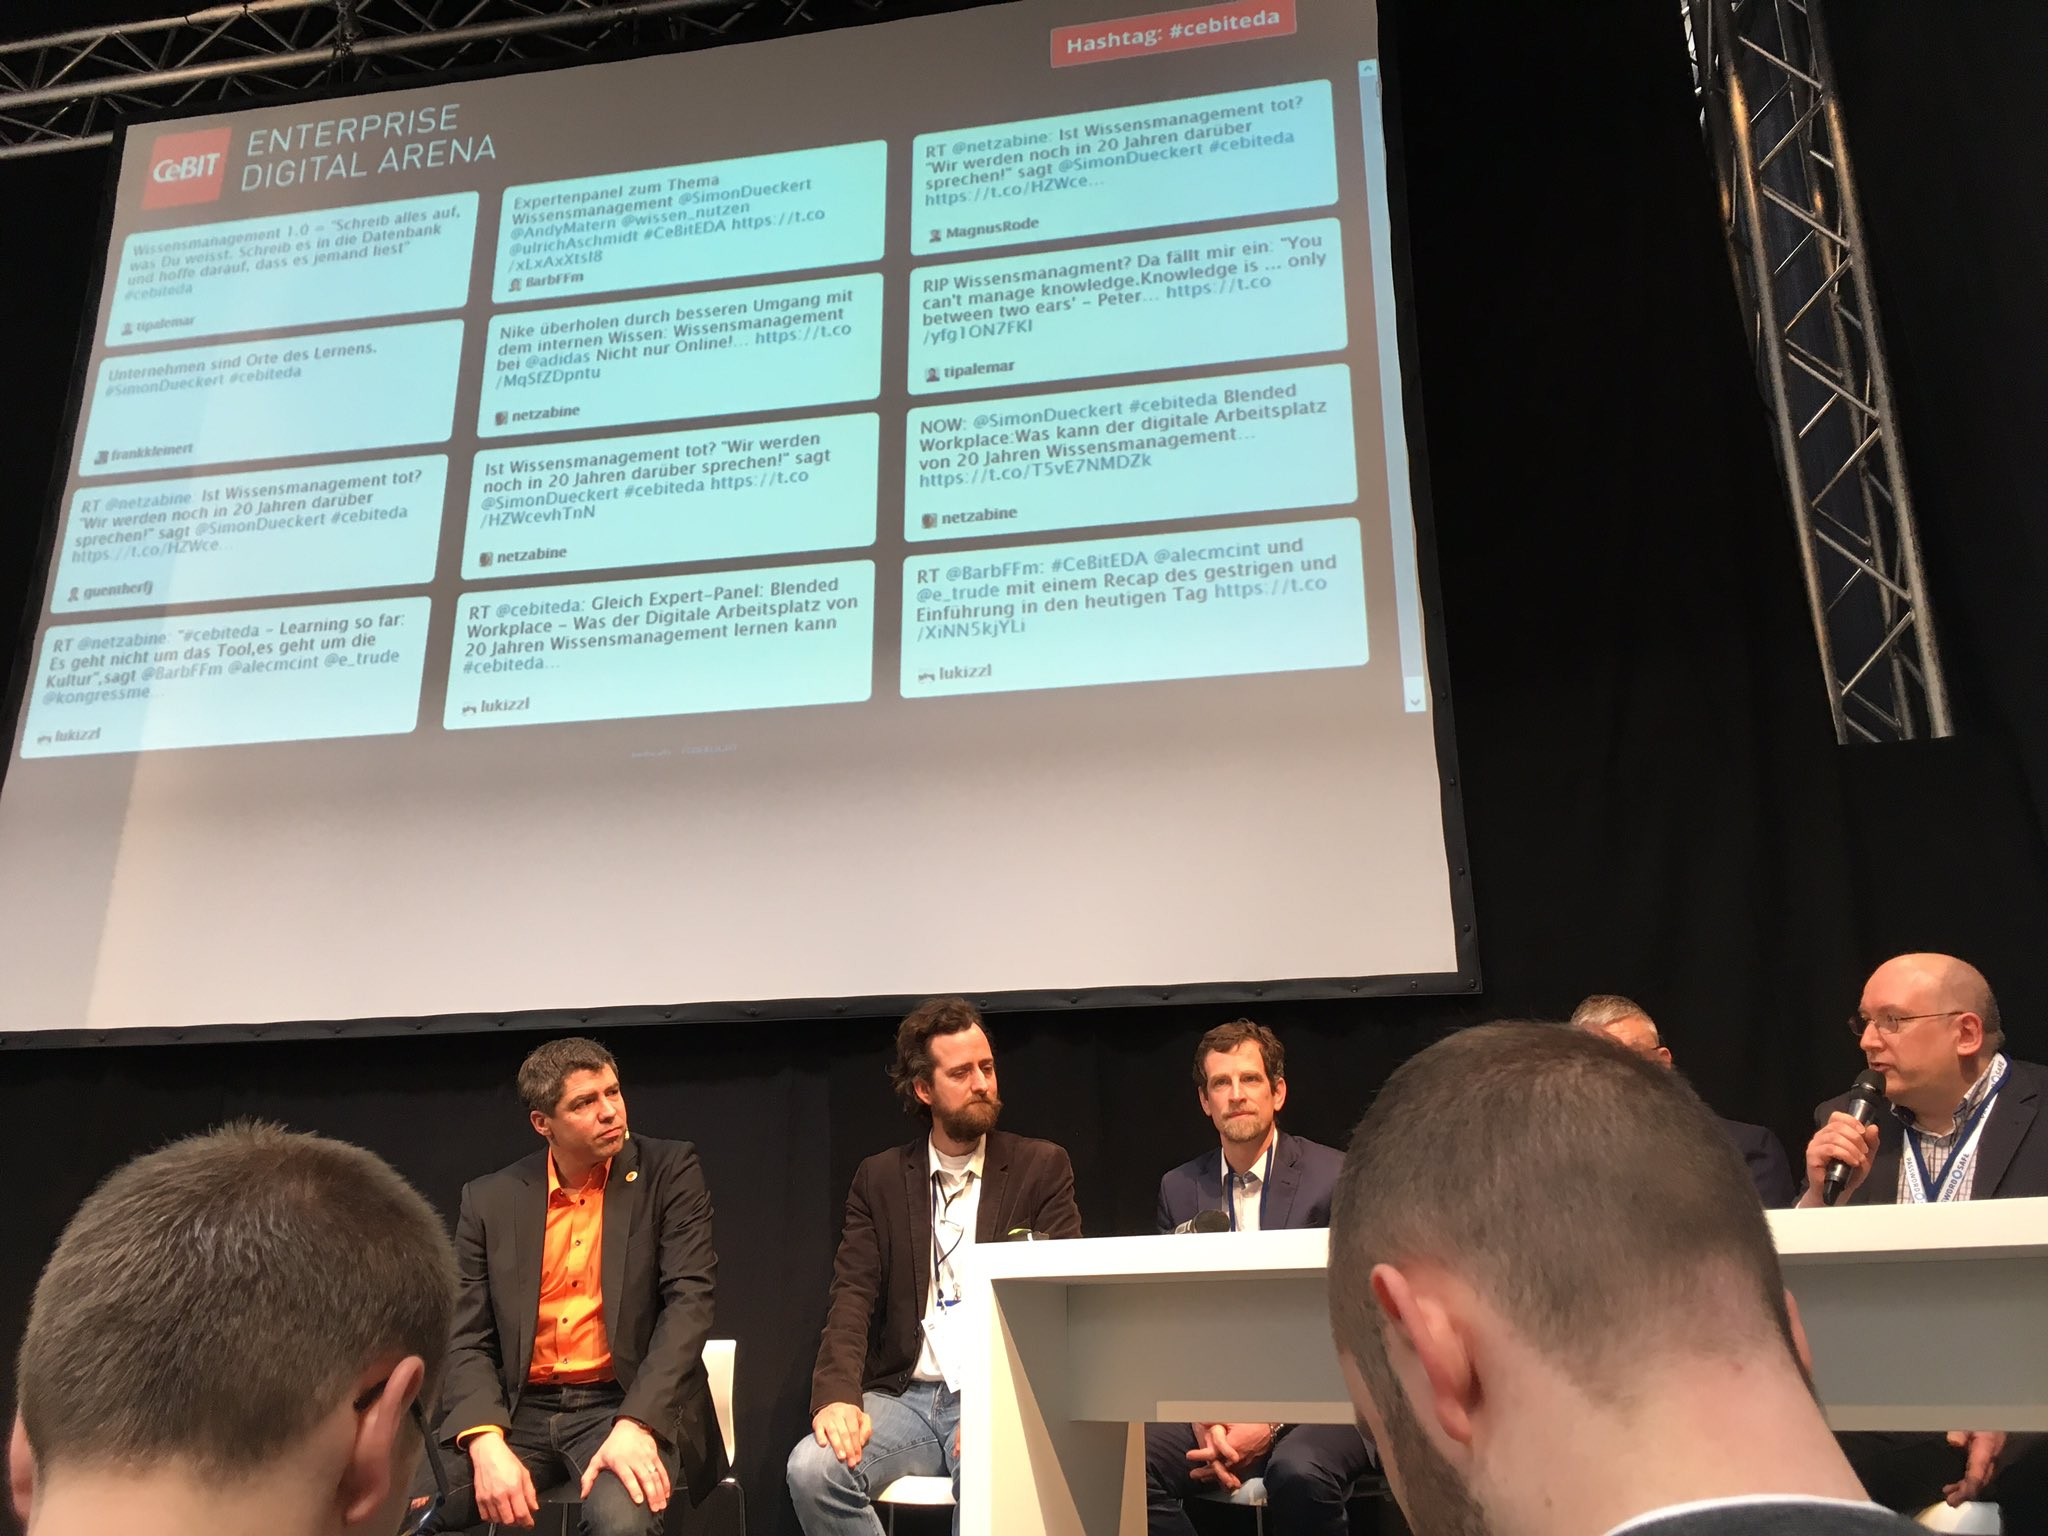 Marcus Hampel auf dem Podium der @cebit Enterprise Digital Arena zu #Kollaboration und #Wissensmanagement. #cebiteda https://t.co/wpHv5fx5dq